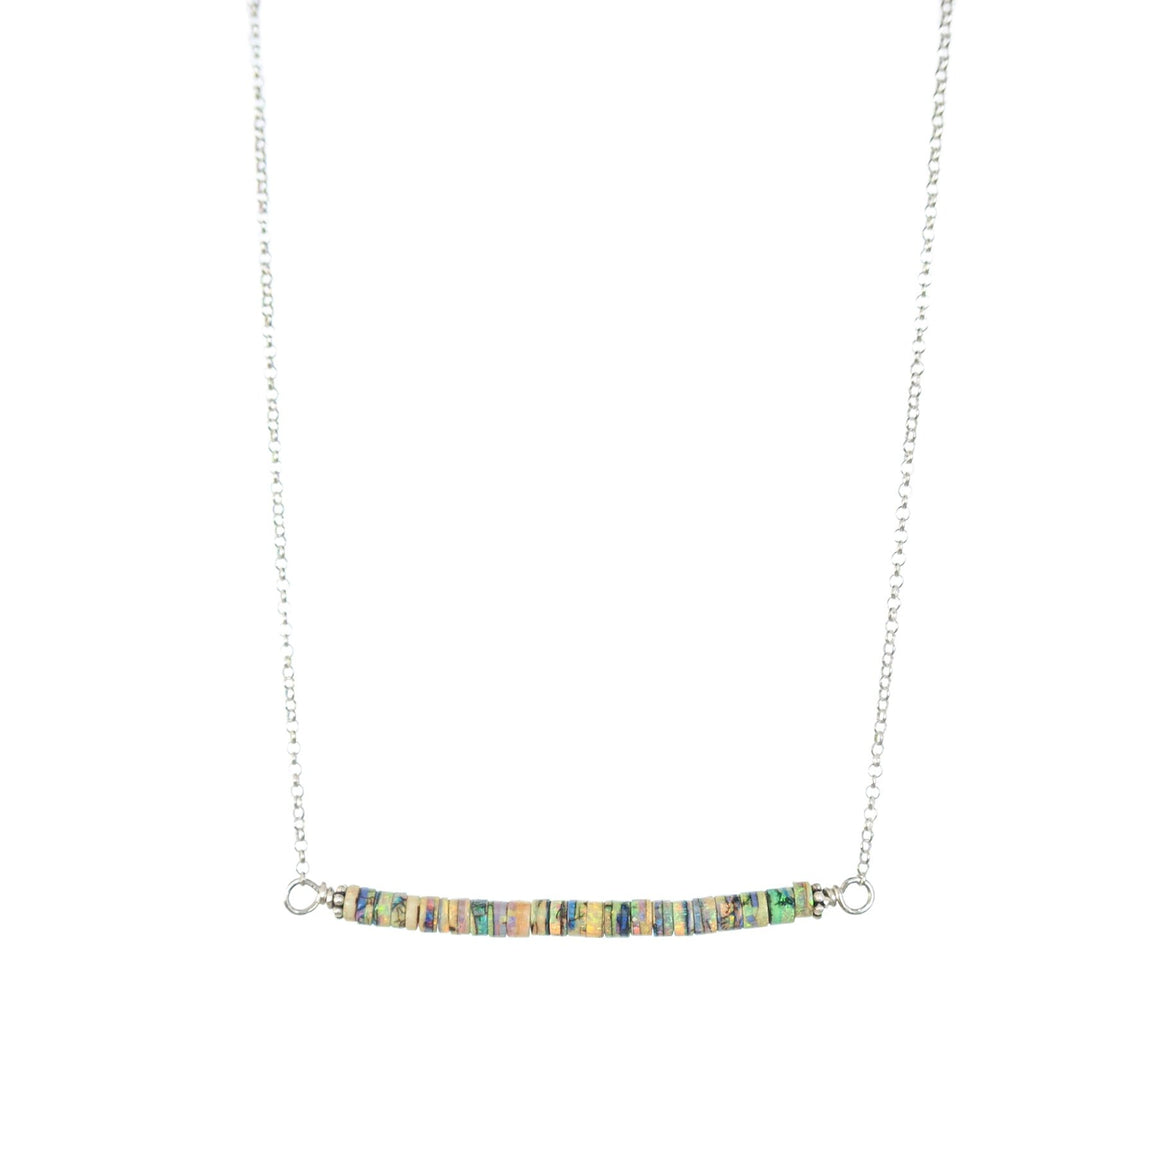 Simple modern minimalist opal rondel bar necklace Balance by Original Sin Jewelry in Tucson AZ